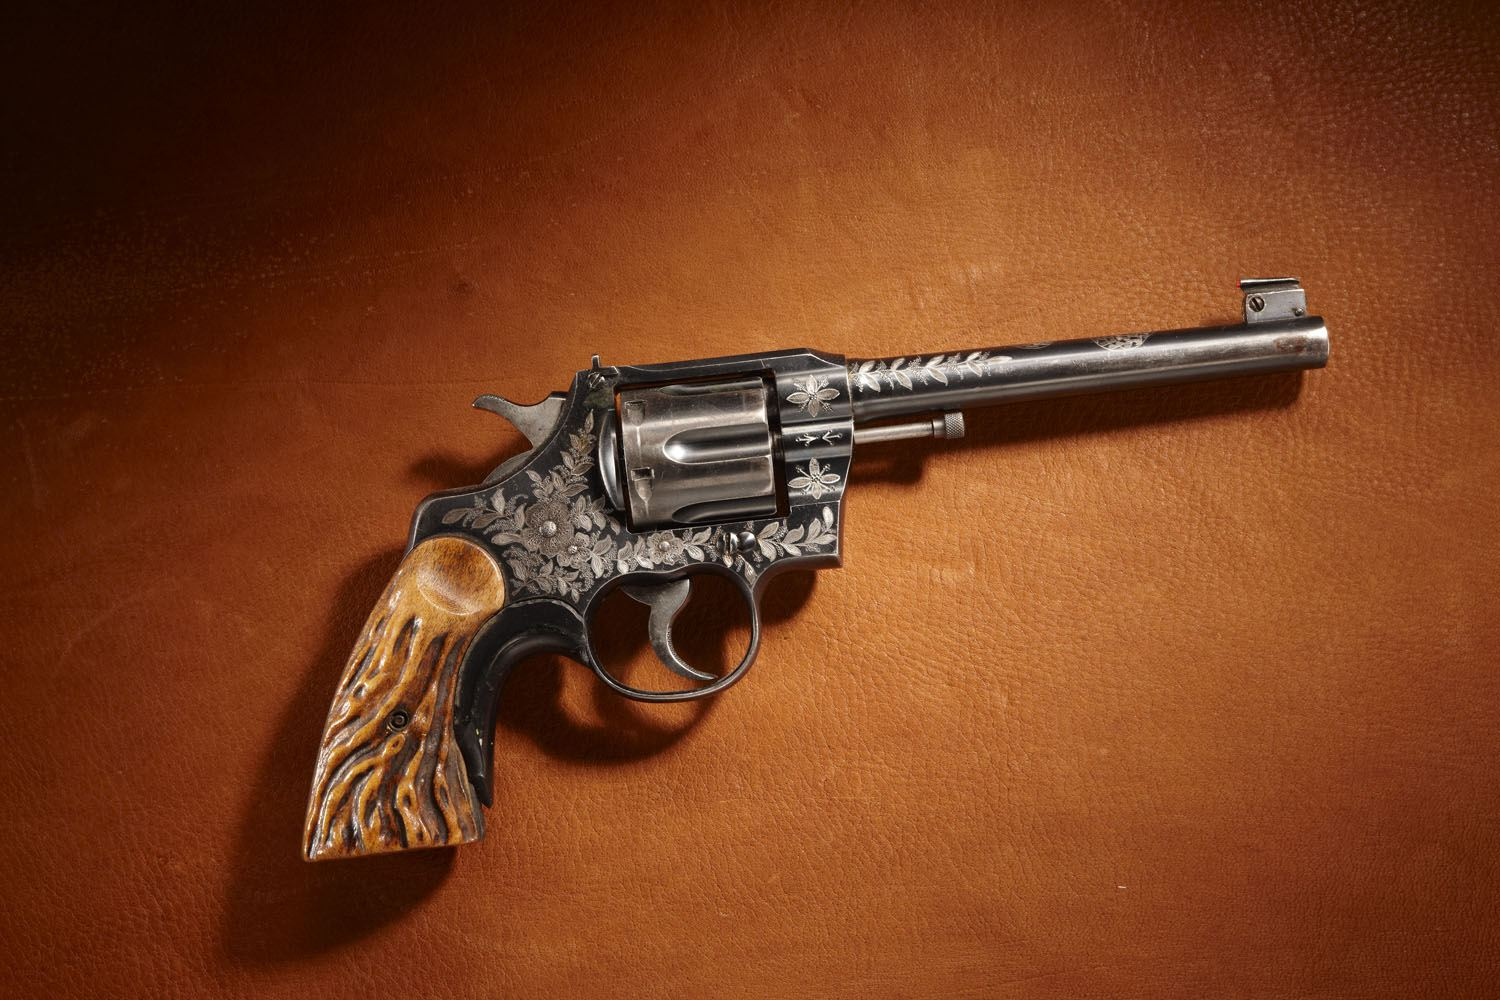 Exhibition Shooter Ad Topperwein's Colt Revolver